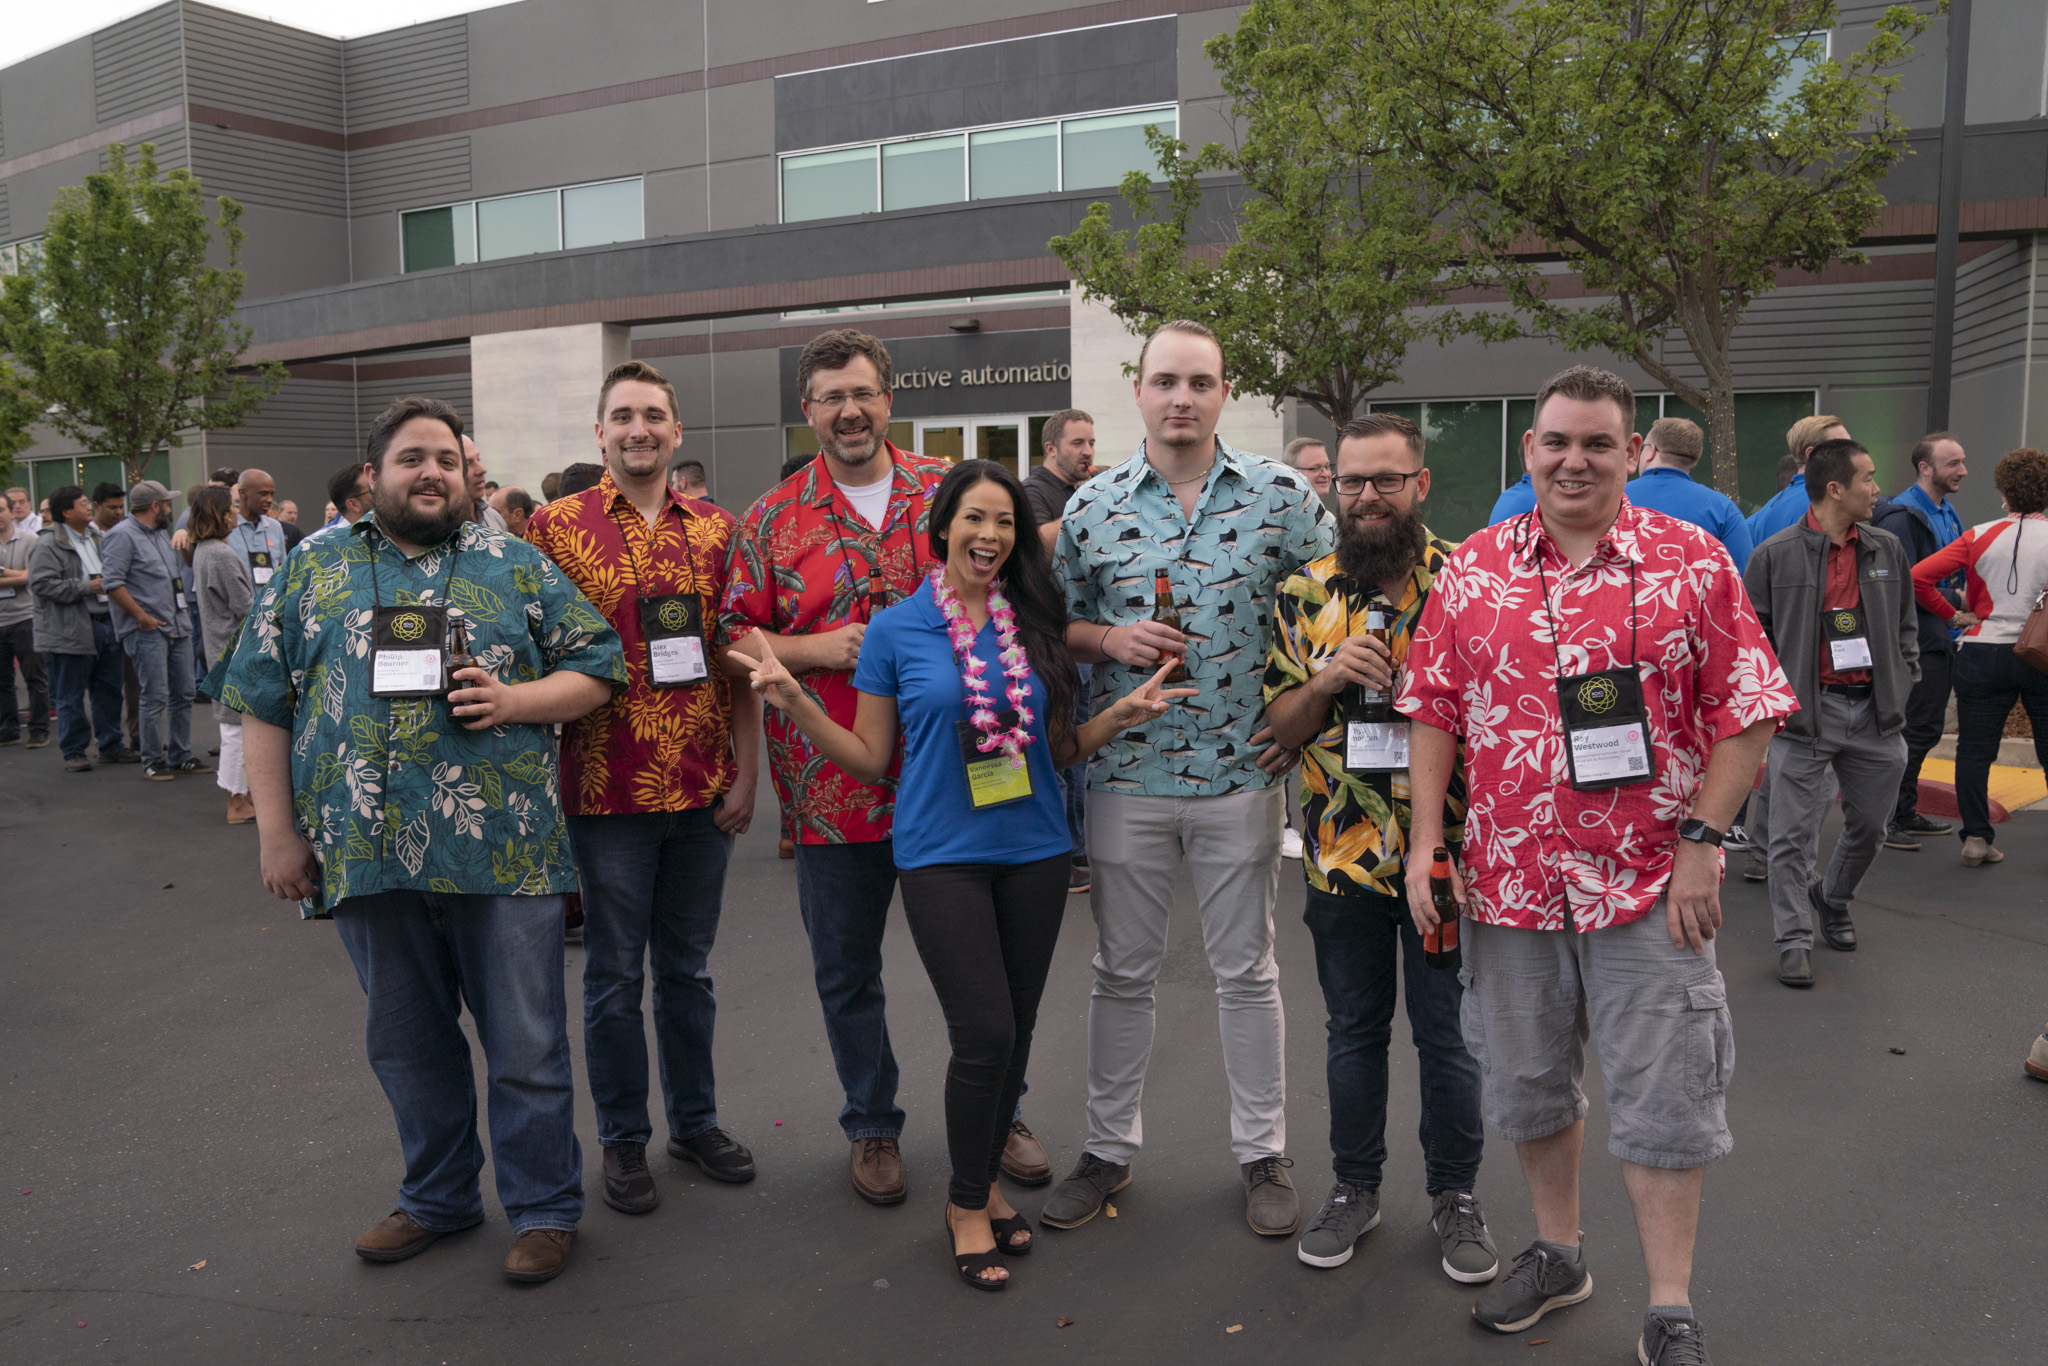 Six Roeslein employees wearing different Hawaiian shirts,  with IA Account Executive Vannessa Garcia standing in front holding up two peace signs